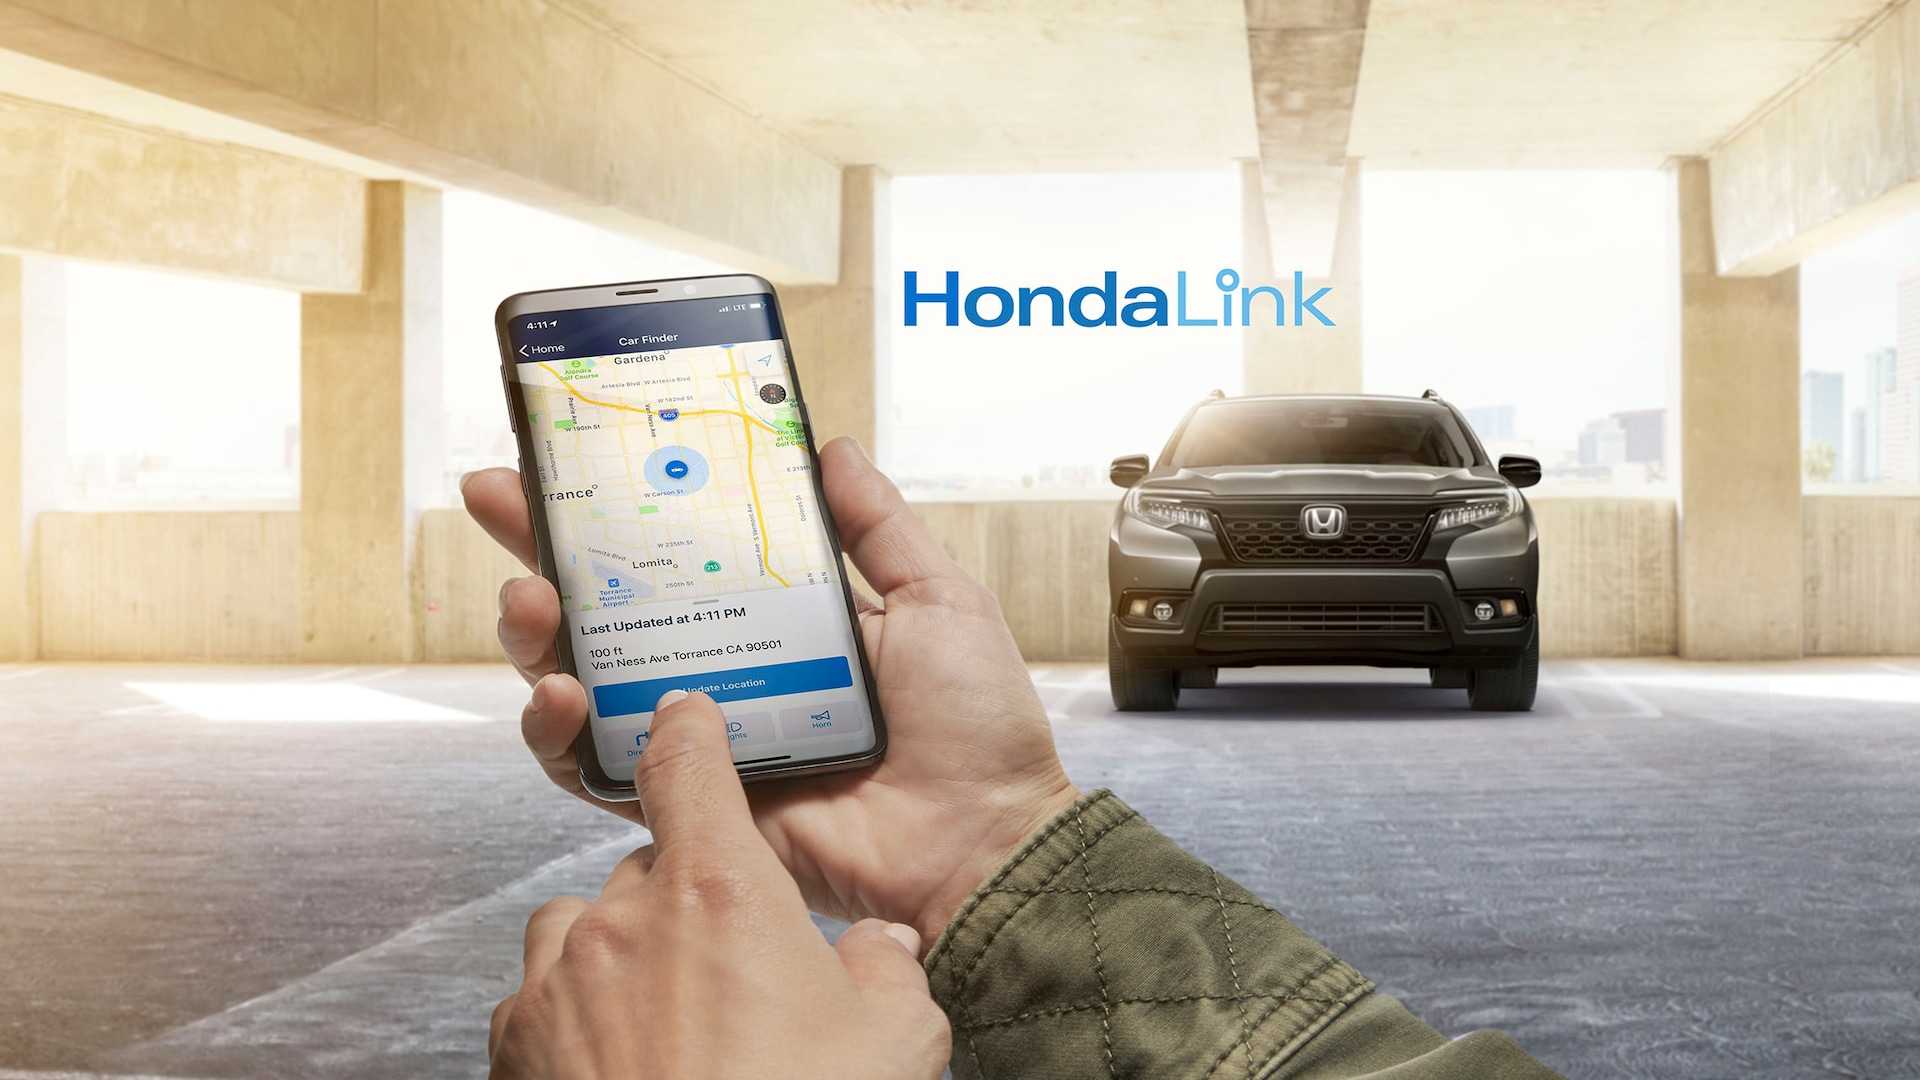 HondaLink® feature detail demonstrated on mobile phone.